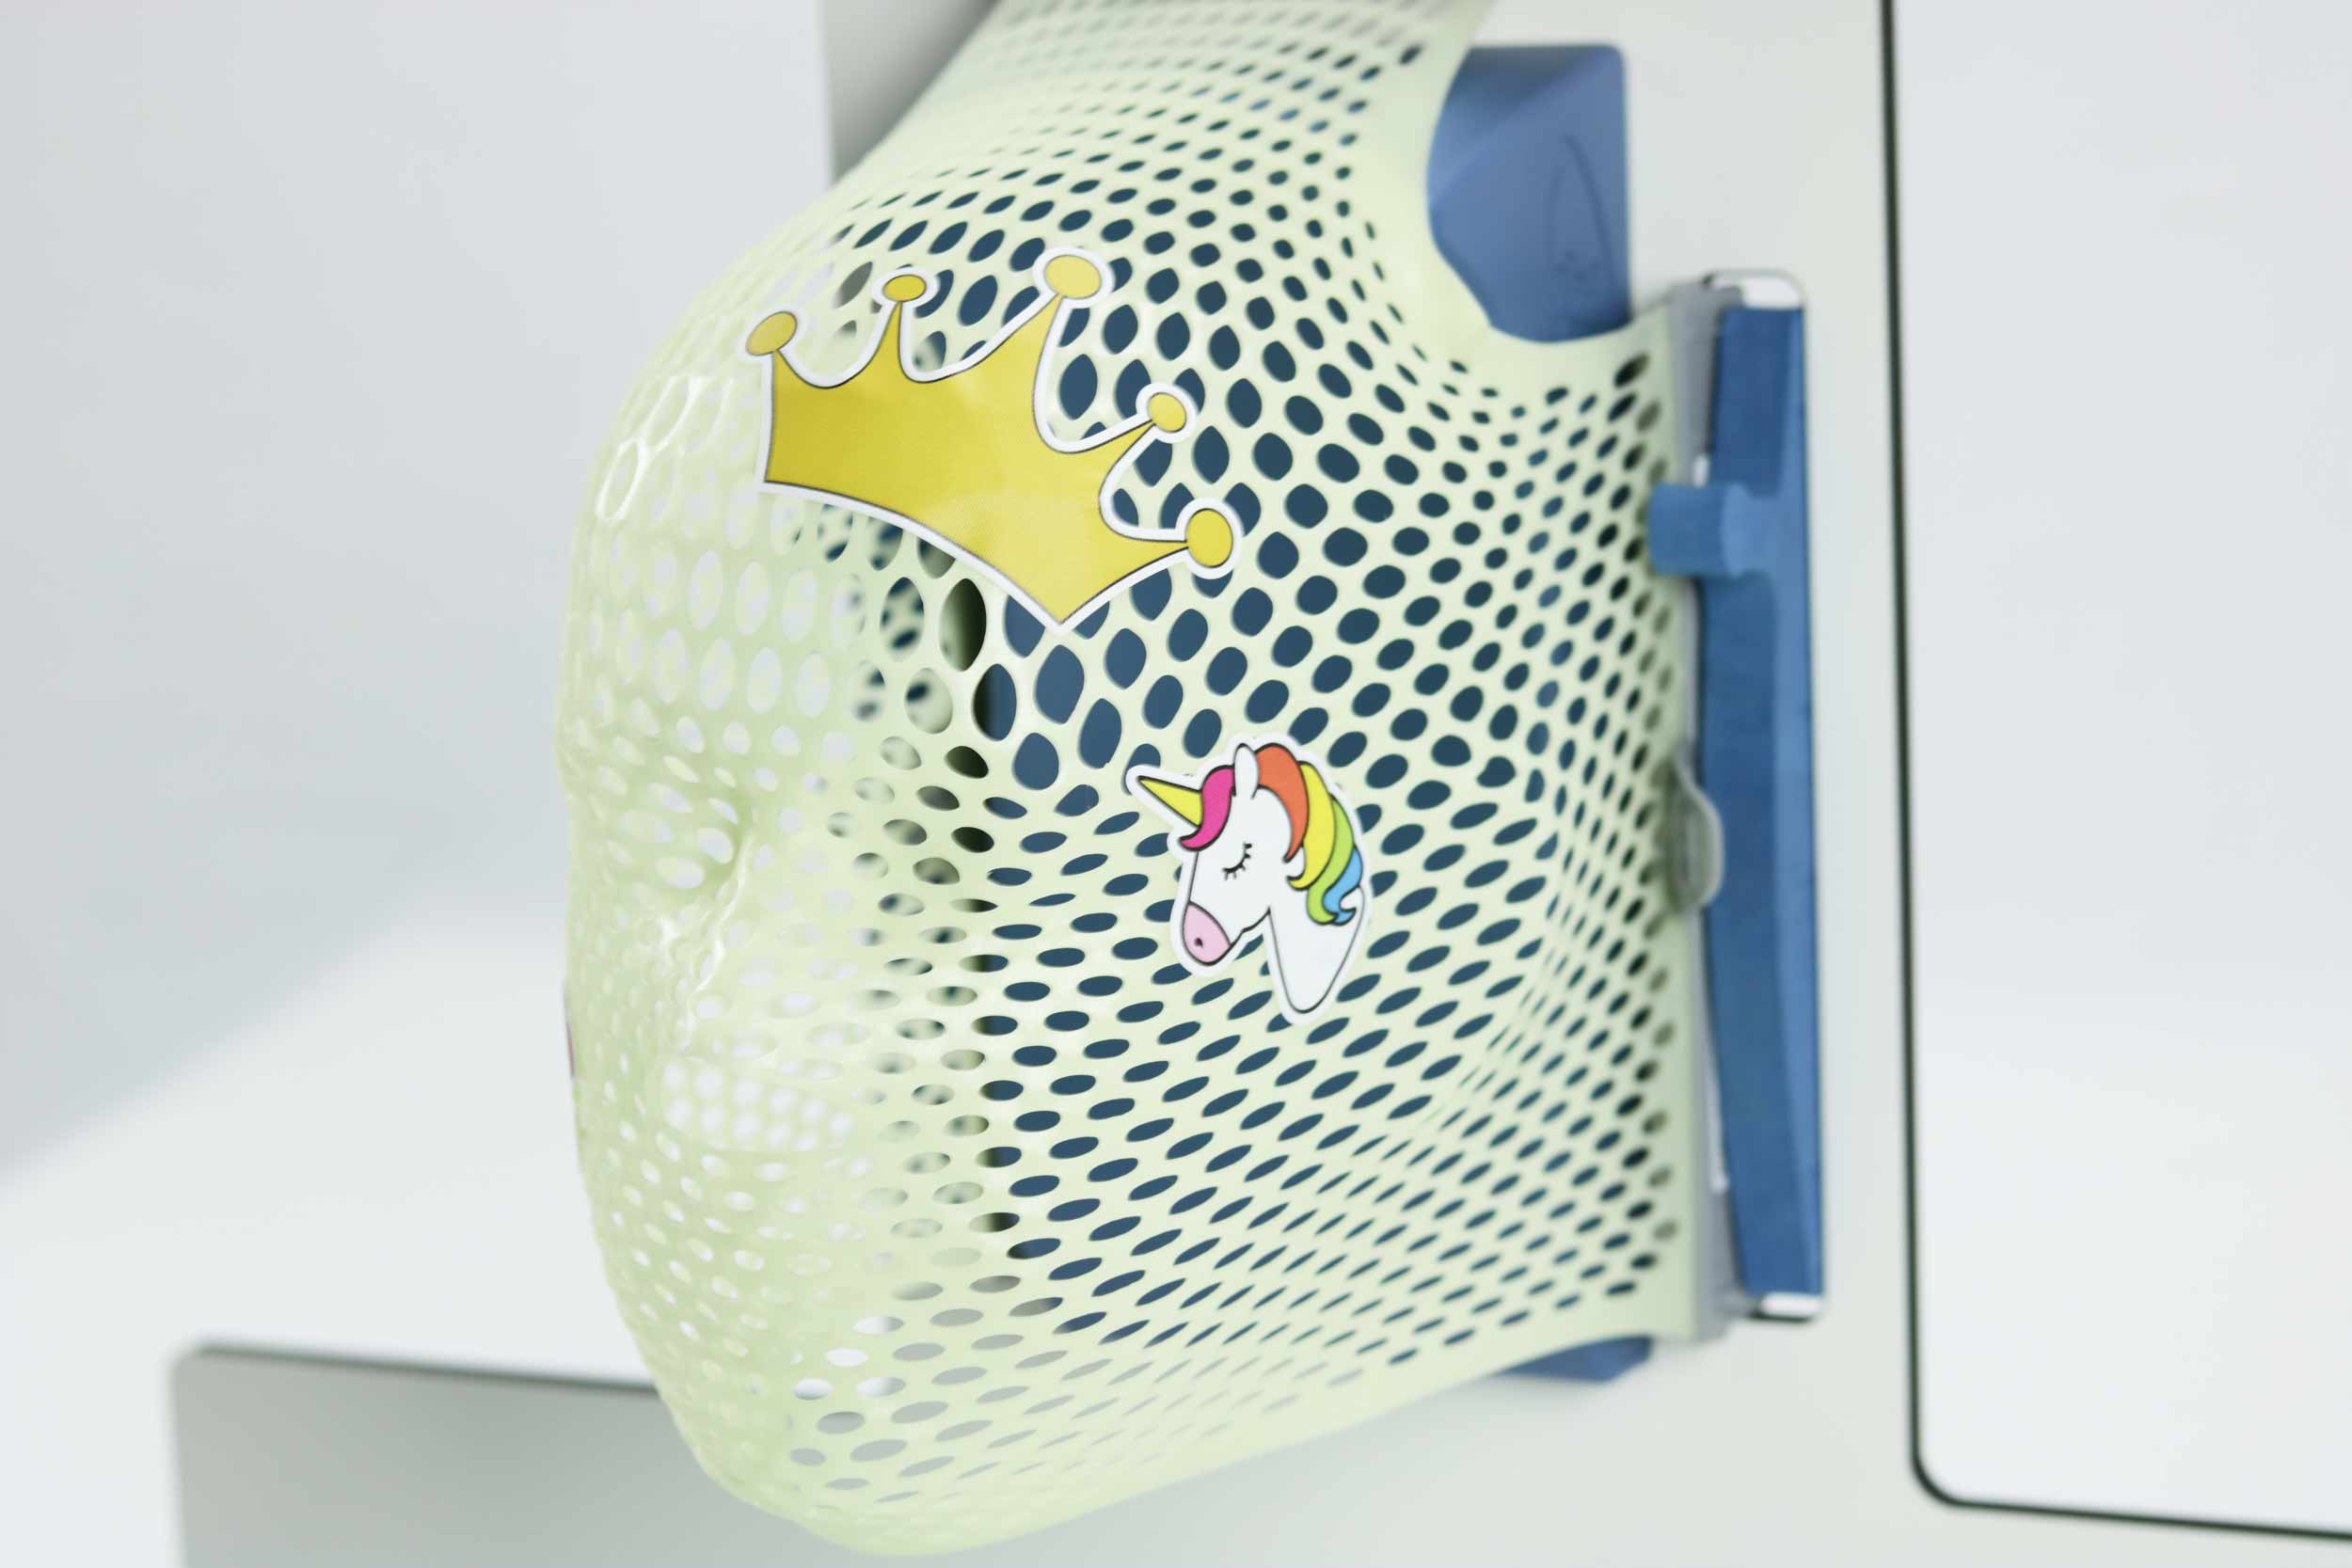 Thermoplastic mask with crown and unicorn stickers